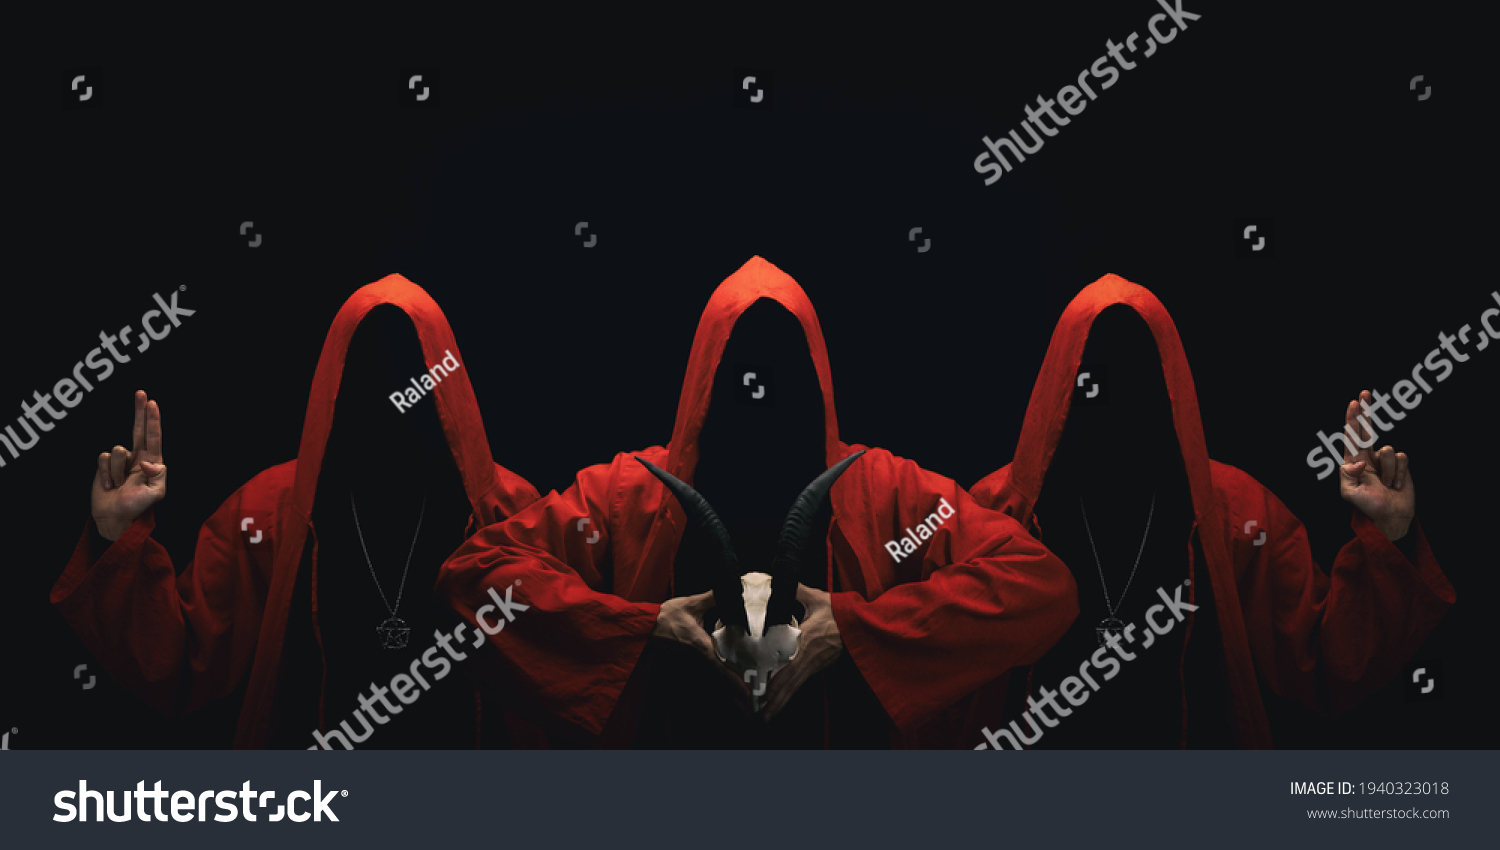 Mystery people in a red hooded cloaks in the dark. Hiding face in shadow. Pointing up with fingers. Satanic symbols. Ghostly figure. #1940323018